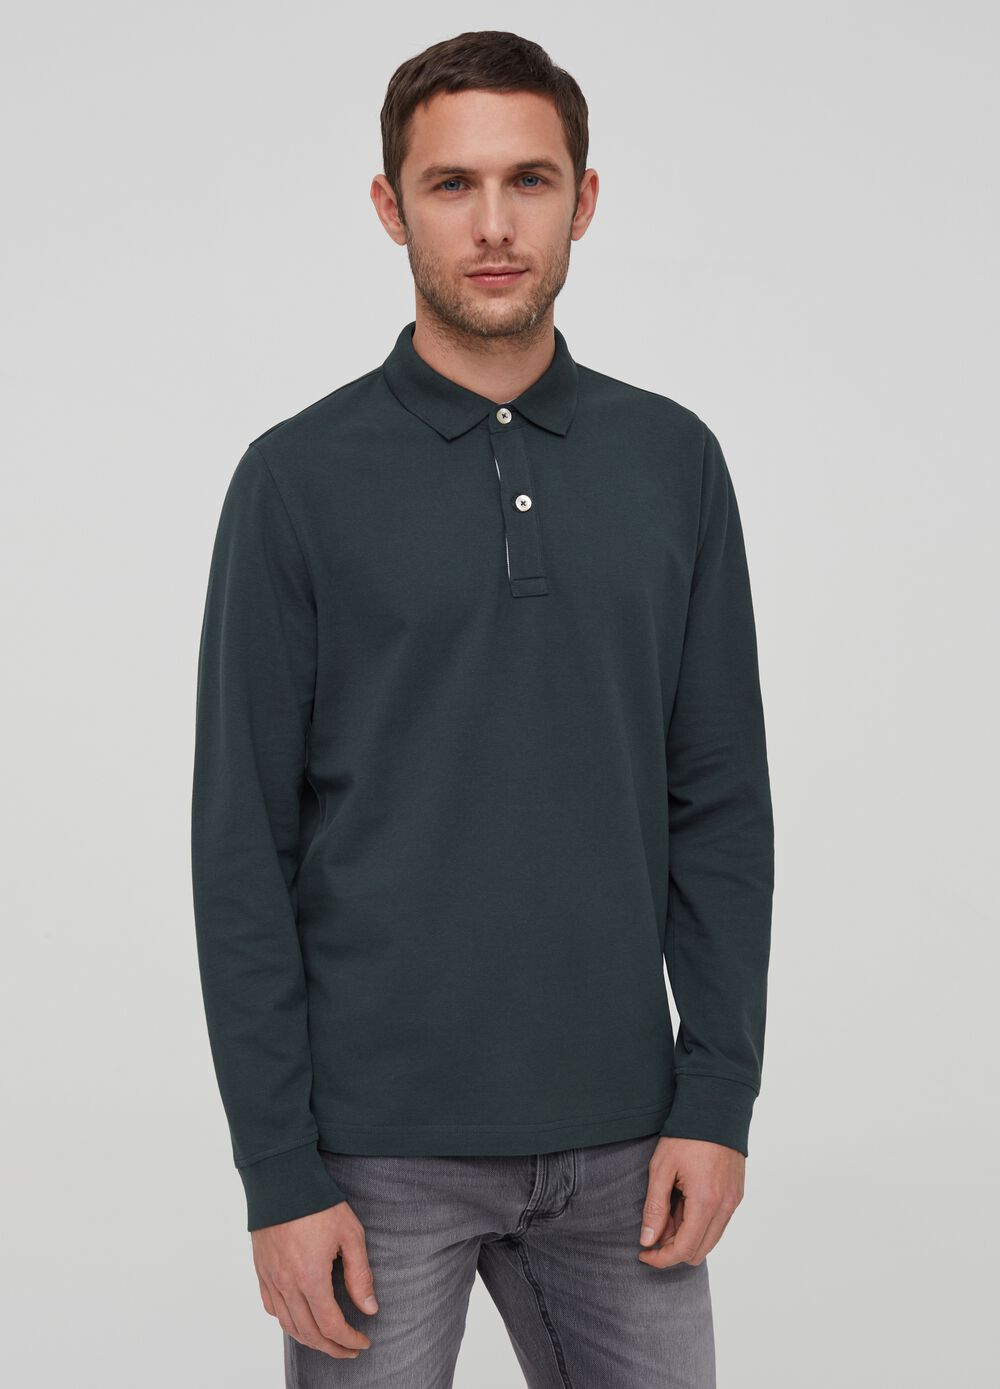 100% cotton polo shirt with ribbing